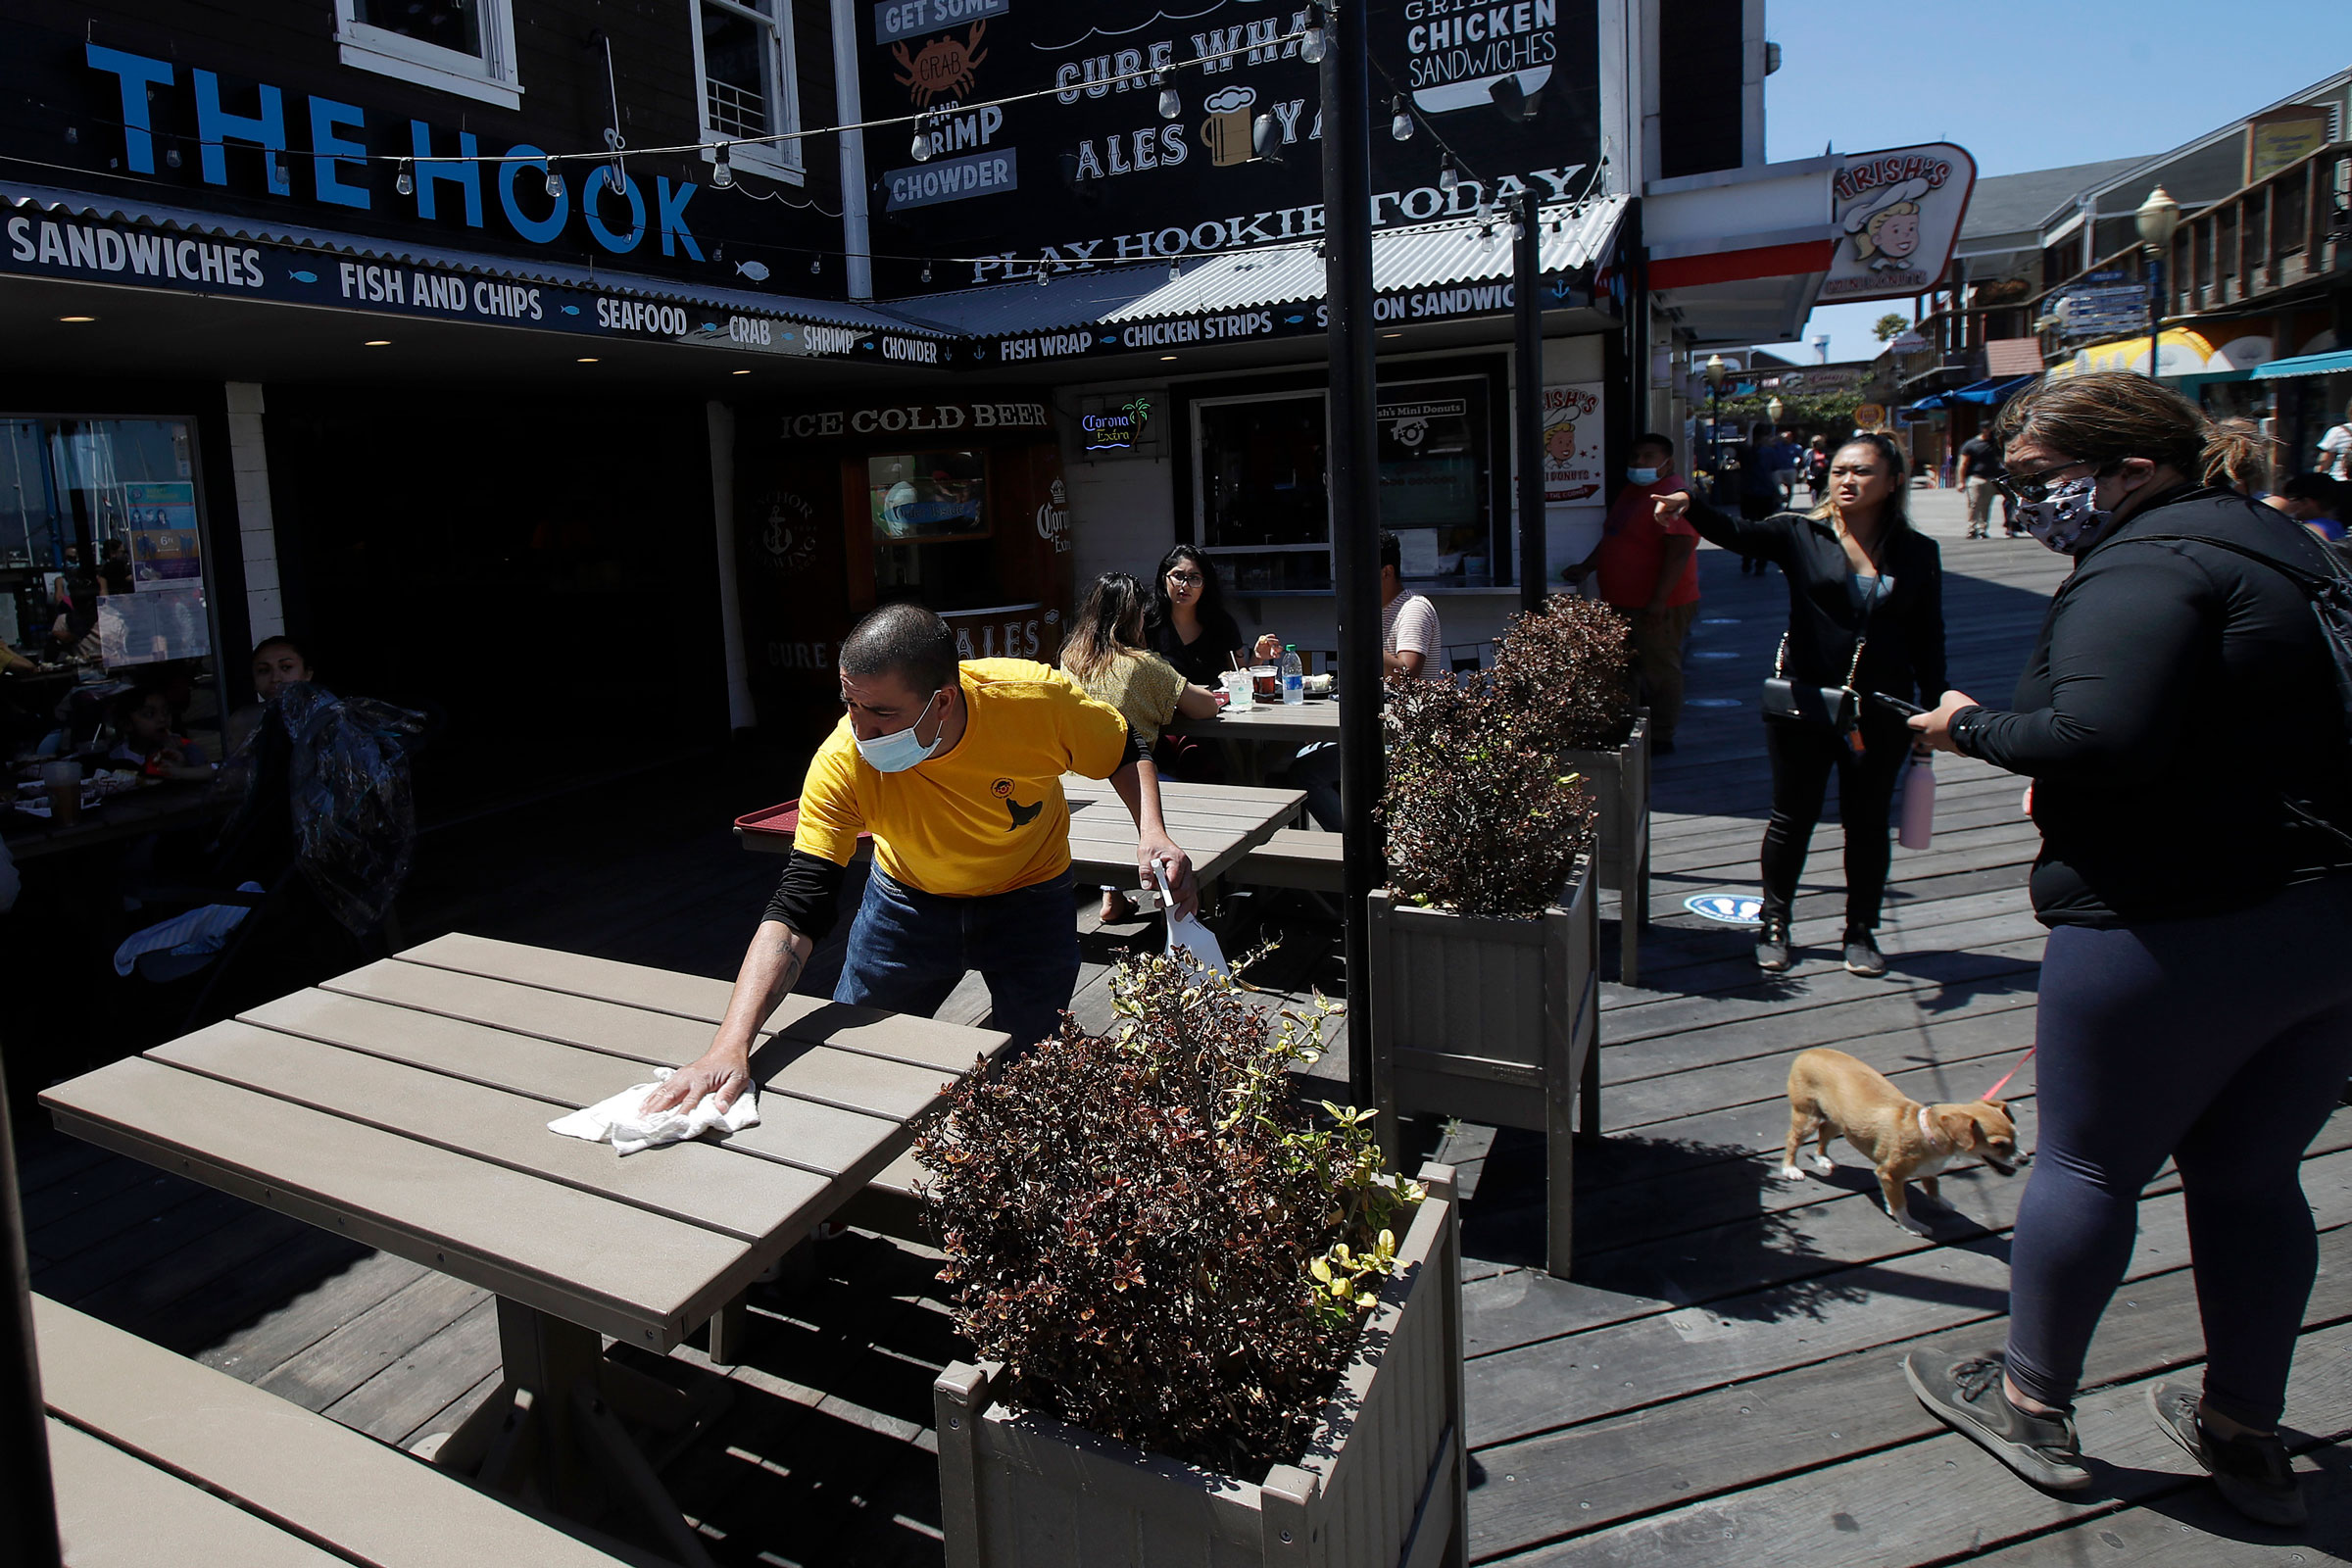 A man wears a face mask while cleaning an outdoor dining table at The Hook at San Francisco's Pier 39 on June 18.